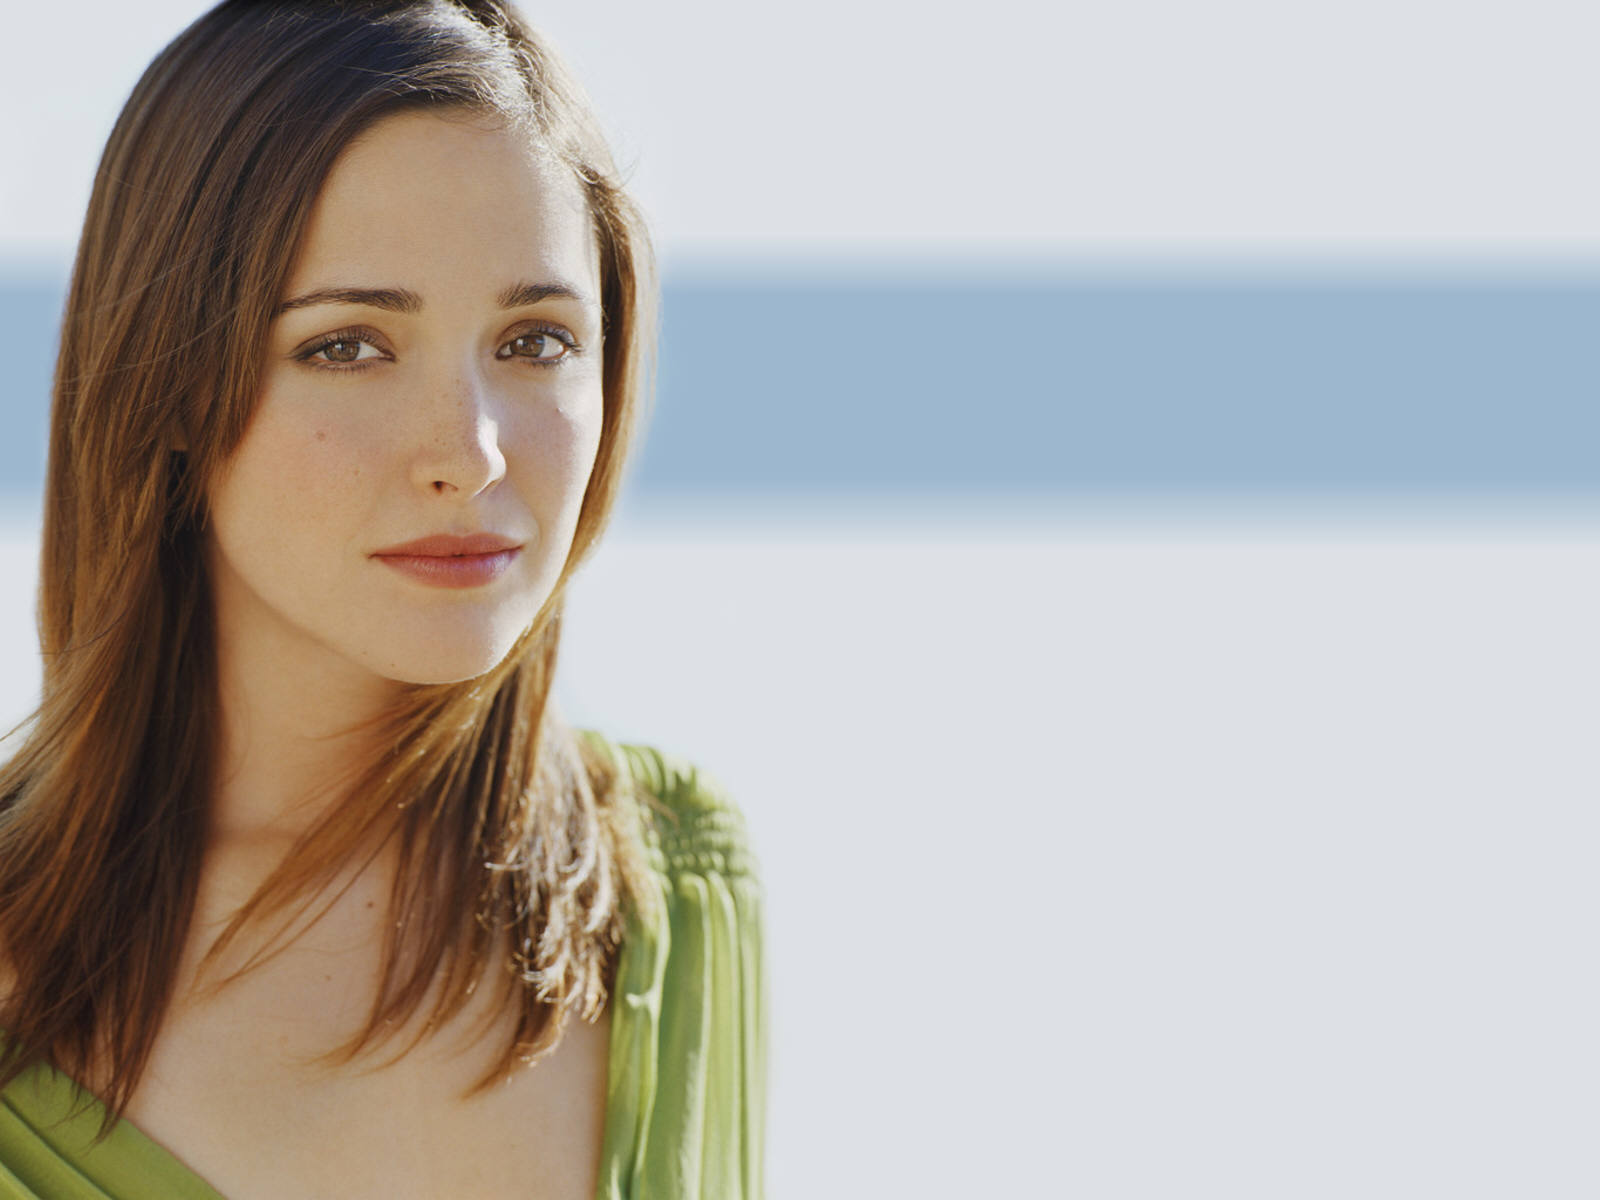 http://4.bp.blogspot.com/-Eq45uemzatI/UWFckMjOO4I/AAAAAAAAOqg/CV1L5yxH3Cg/s1600/Rose_Byrne_Actress_Wallpapers_sexy-38000.jpg